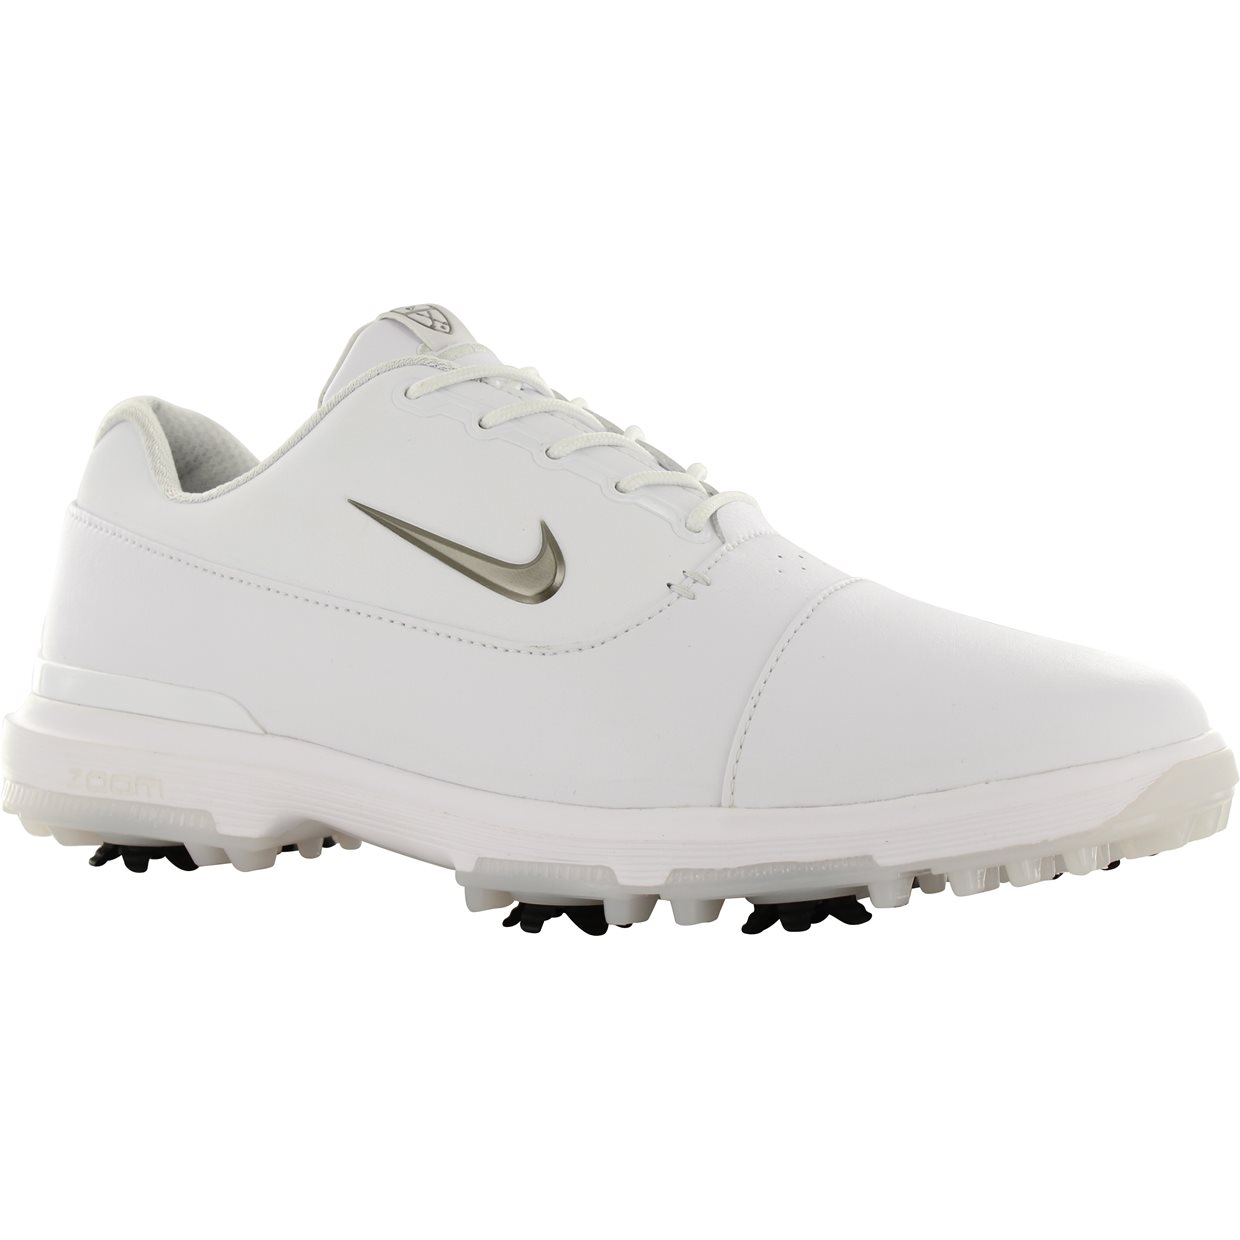 f51900a2f00f Nike Air Zoom victory Pro Golf Shoe in White Metallic Pewter Vast Grey